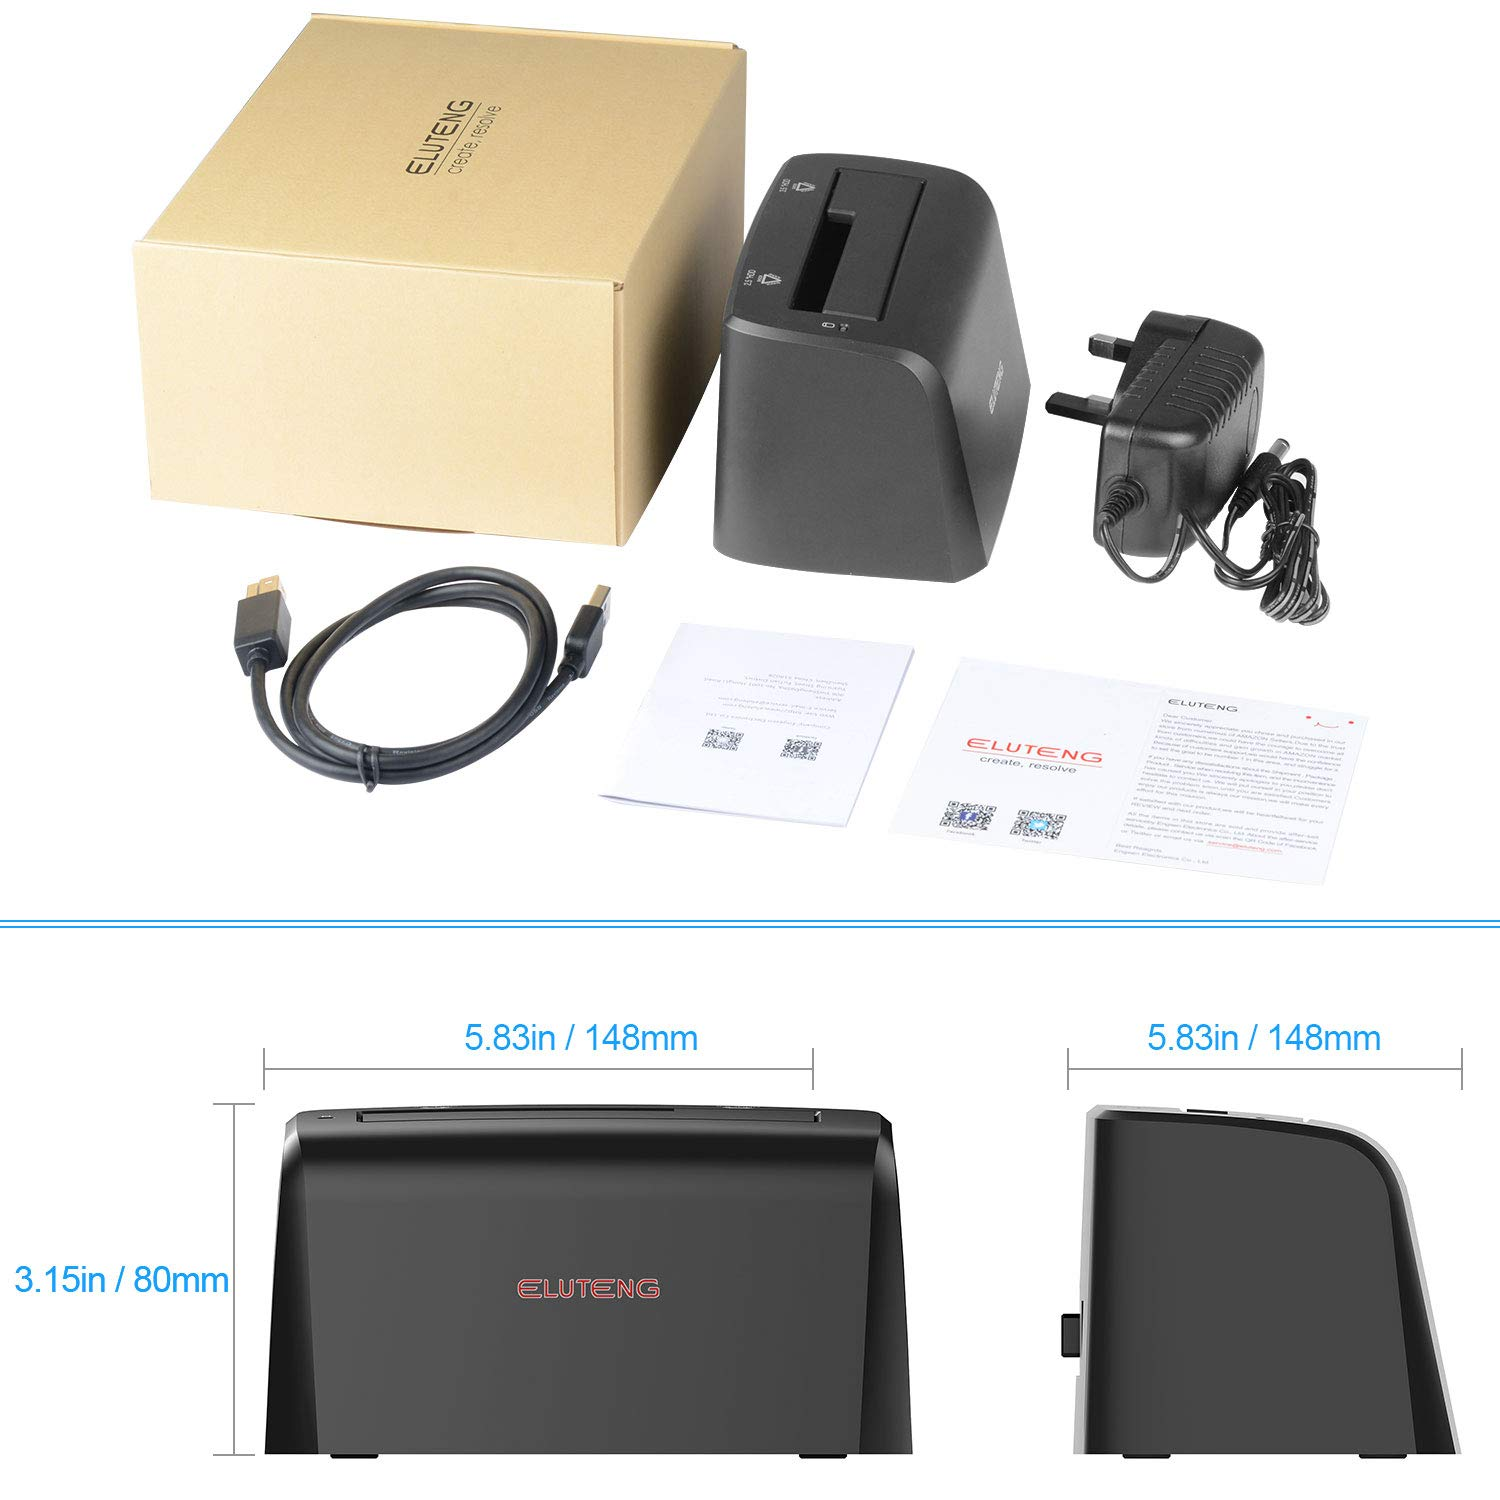 ELUTENG USB3.0 Hard Drive Docking Station for SATA3 2.5 and 3.5 inch SSD or HDD 5Gbps UASP Super Speed Max Support 8TB Hard Disk Drive Dock Plug and Play by ELUTENG (Image #8)